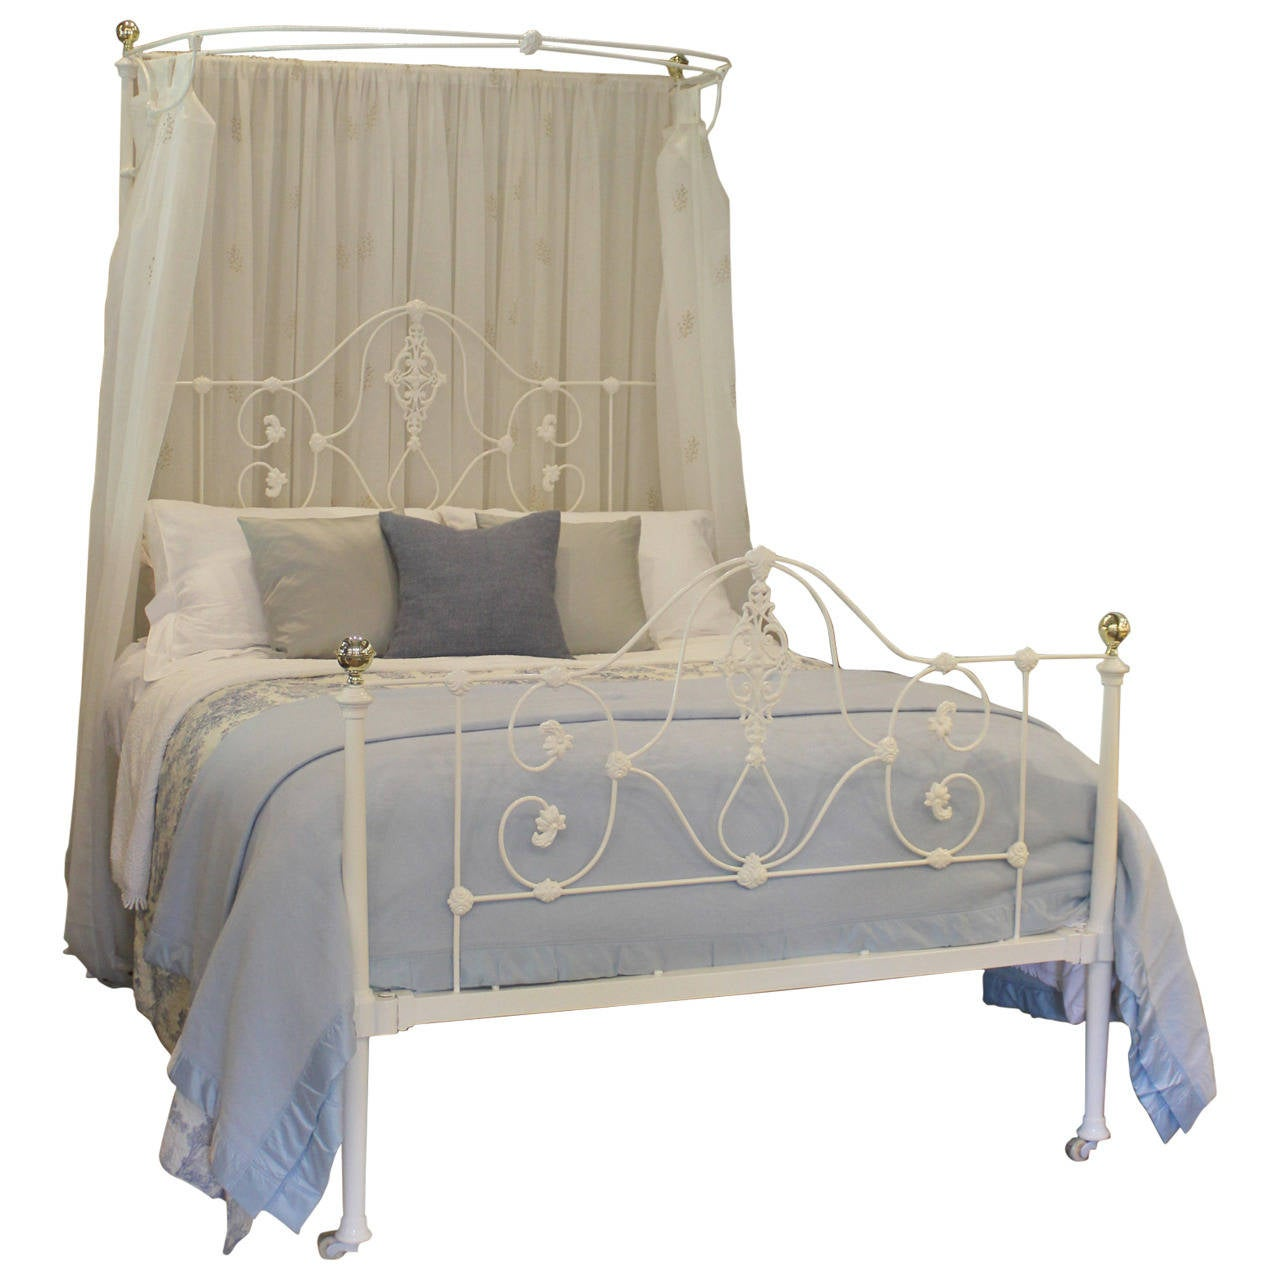 mid victorian cast iron half tester bed mht1 at 1stdibs. Black Bedroom Furniture Sets. Home Design Ideas